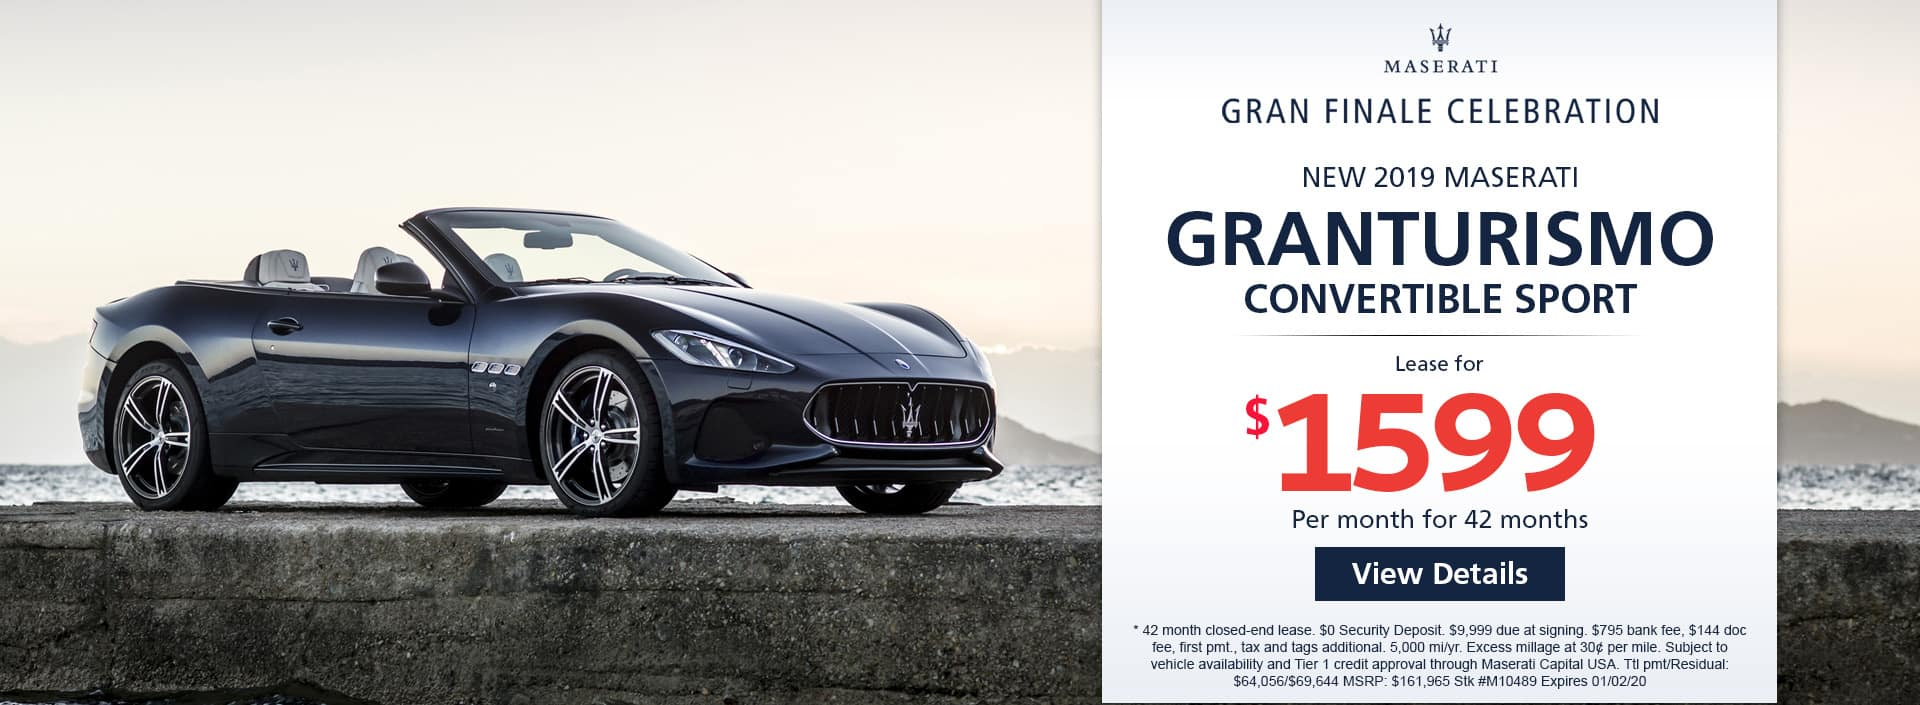 Lease a new 2019 MASERATI GRANTURISMO CONVERTIBLE SPORT for $1,599 a month for 42 months. Or get special 0% APR financing for up to 60 months or 0% APR financing up to M1048 months